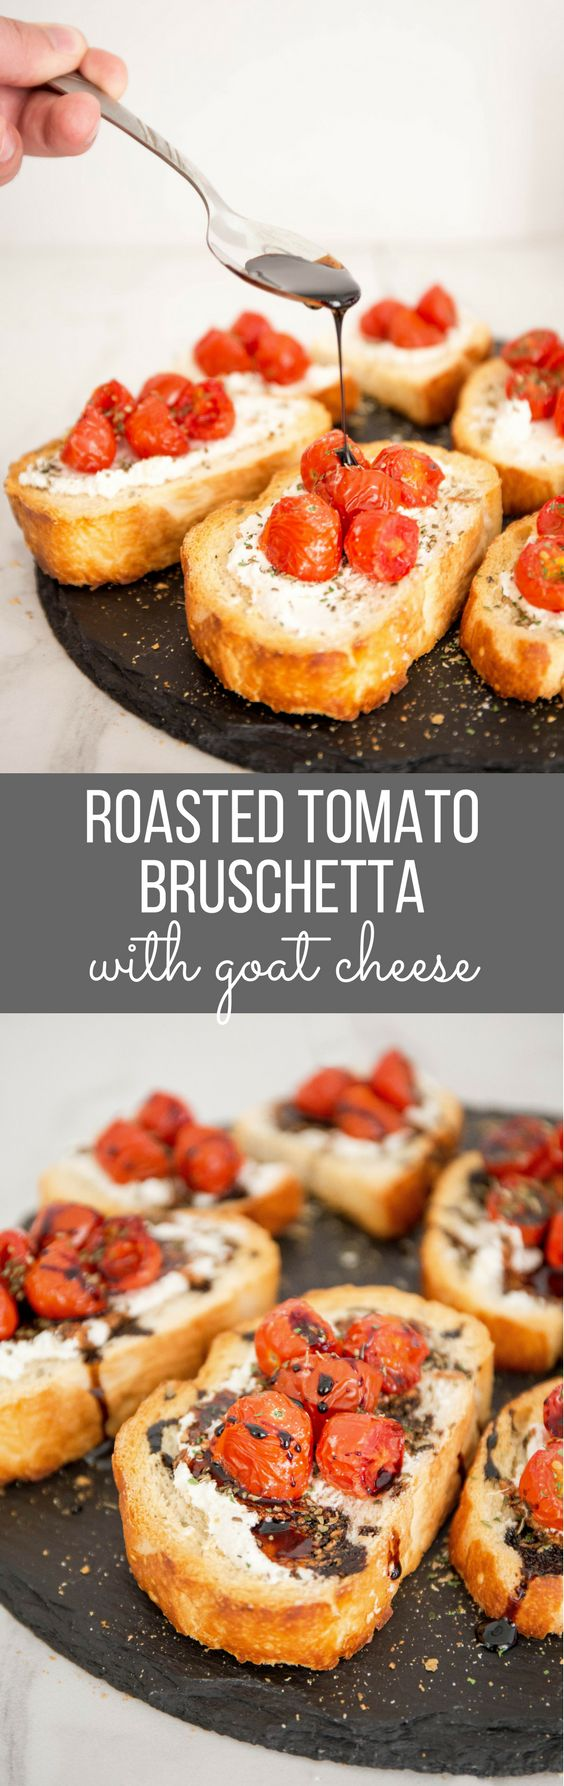 Roasted Tomato Bruschetta - Up your bruschetta game with roasted tomatoes, goat cheese and sweet balsamic reduction. You'll never go back after trying this! | wanderzestblog.com